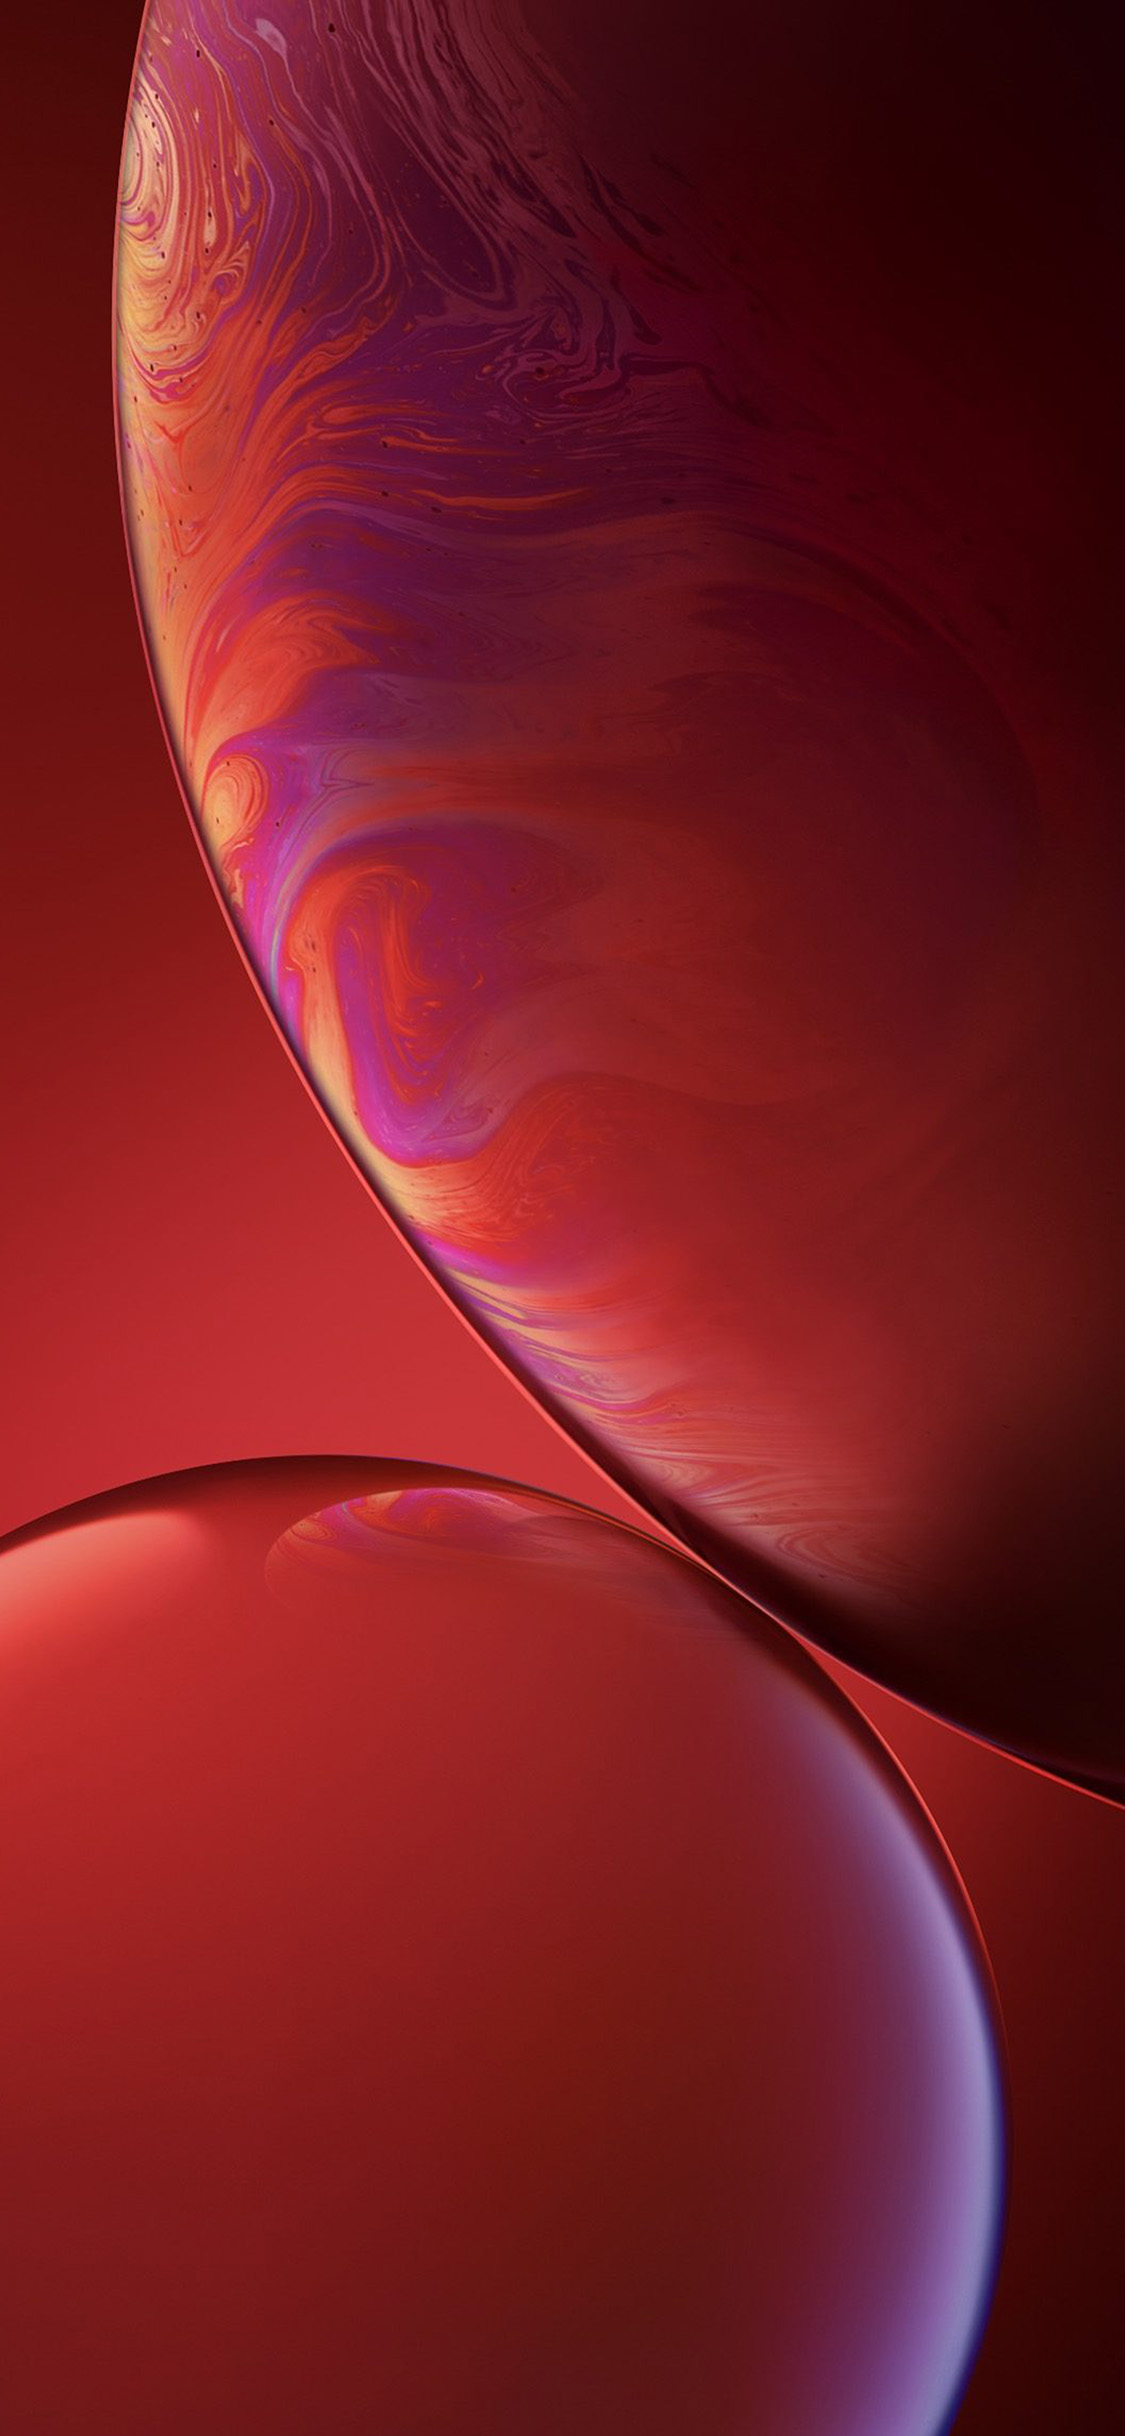 iPhonexpapers.com-Apple-iPhone-wallpaper-bg36-iphone-xs-max-apple-official-art-red-bubble